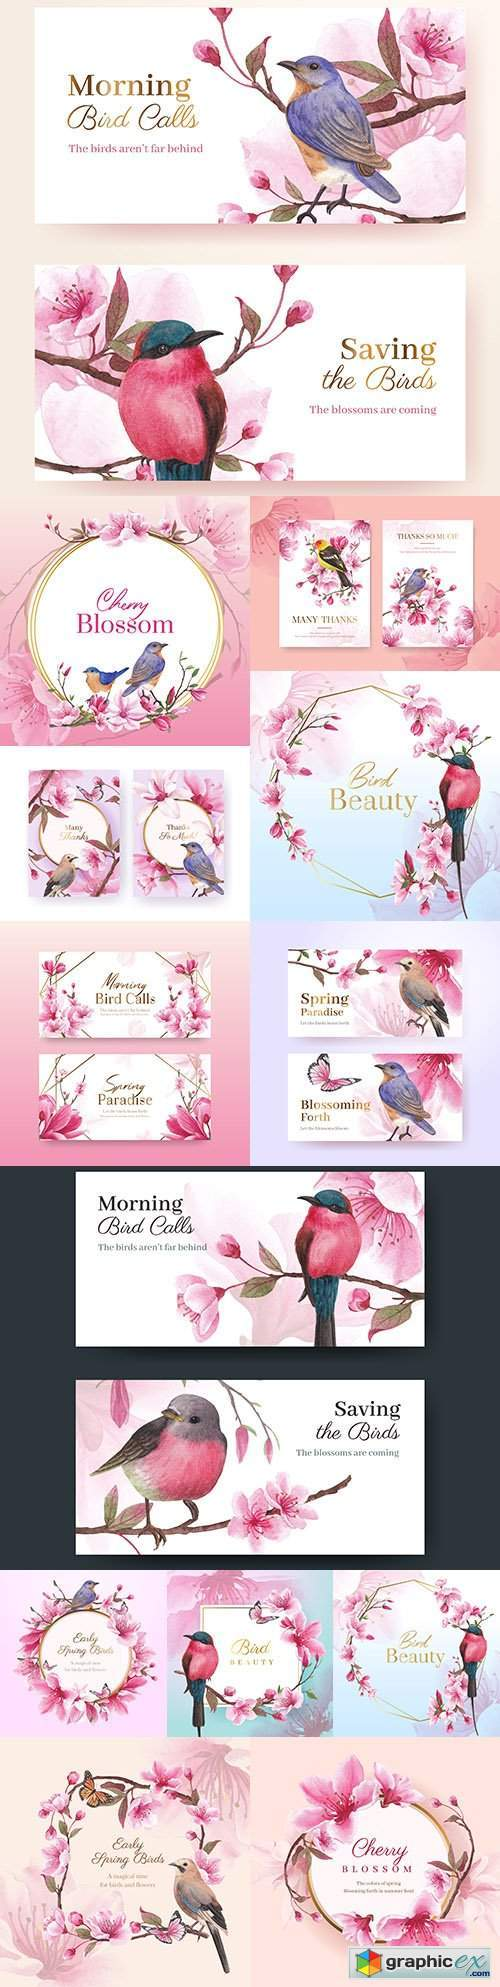 Thank you, design card with flowers and birds watercolor